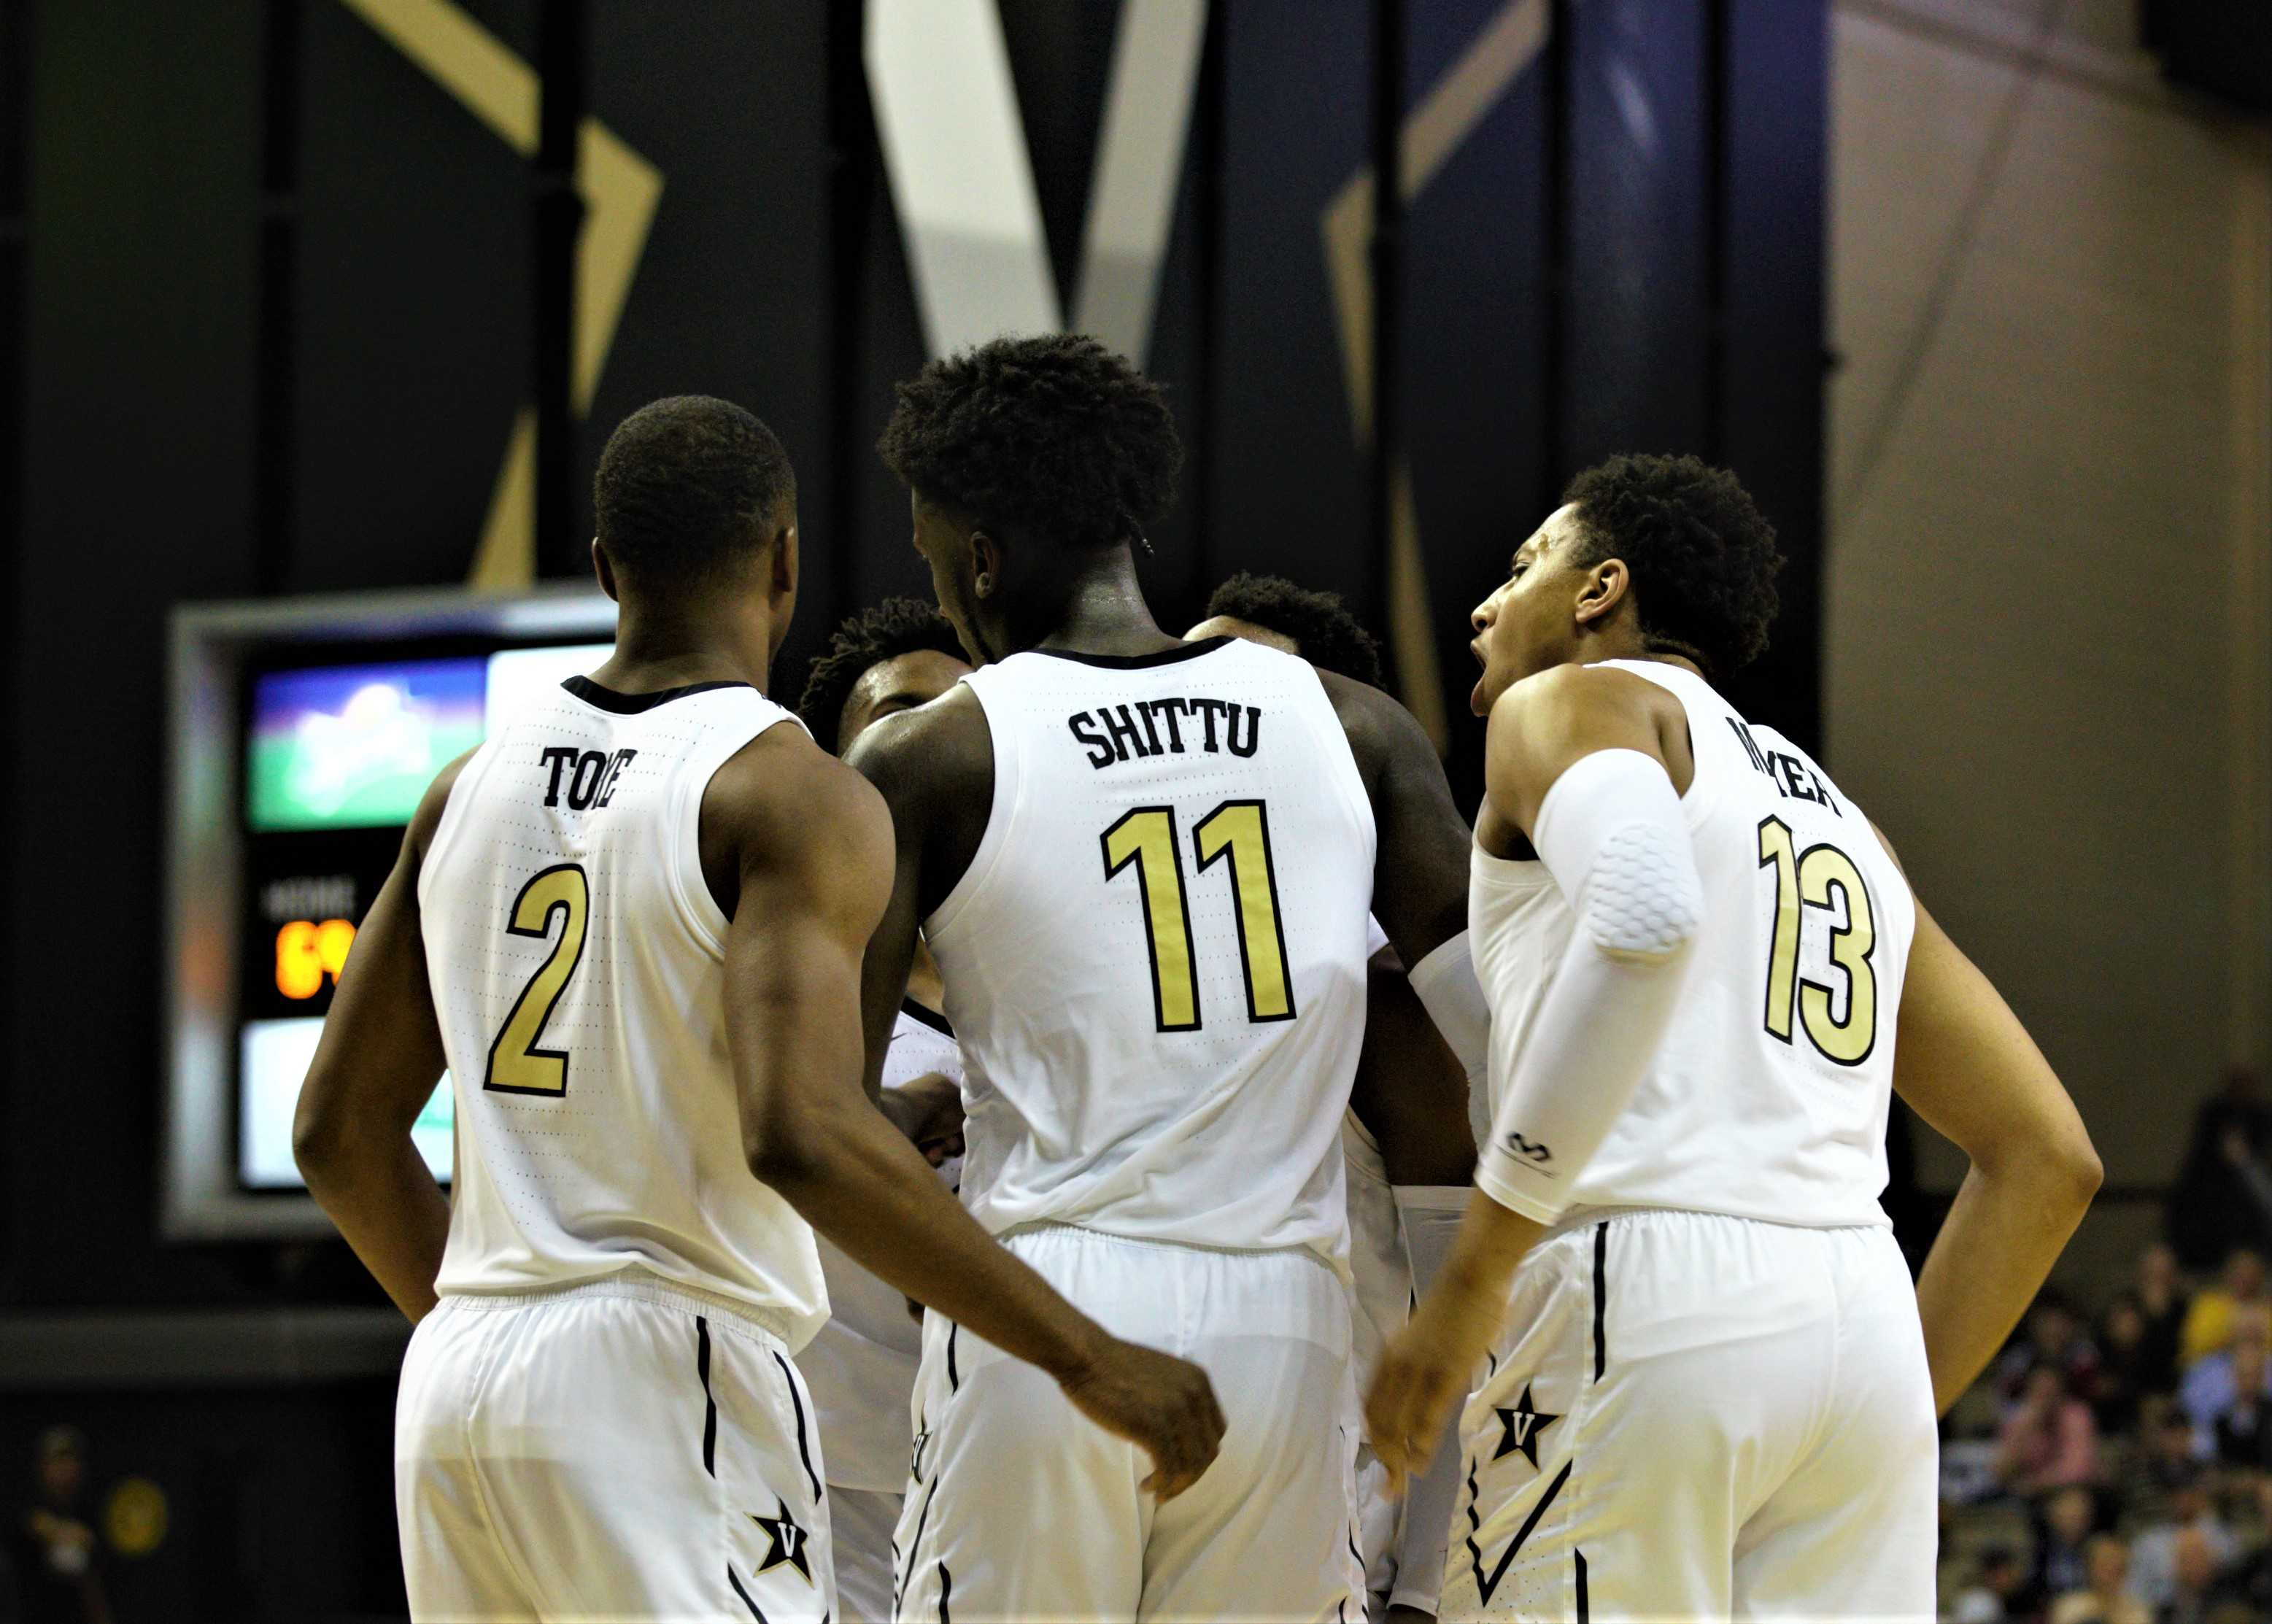 Vanderbilt defeated Savannah State on Tuesday night 120-85 to move to 5-1 on the season (Photo by Shun Ahmed.)